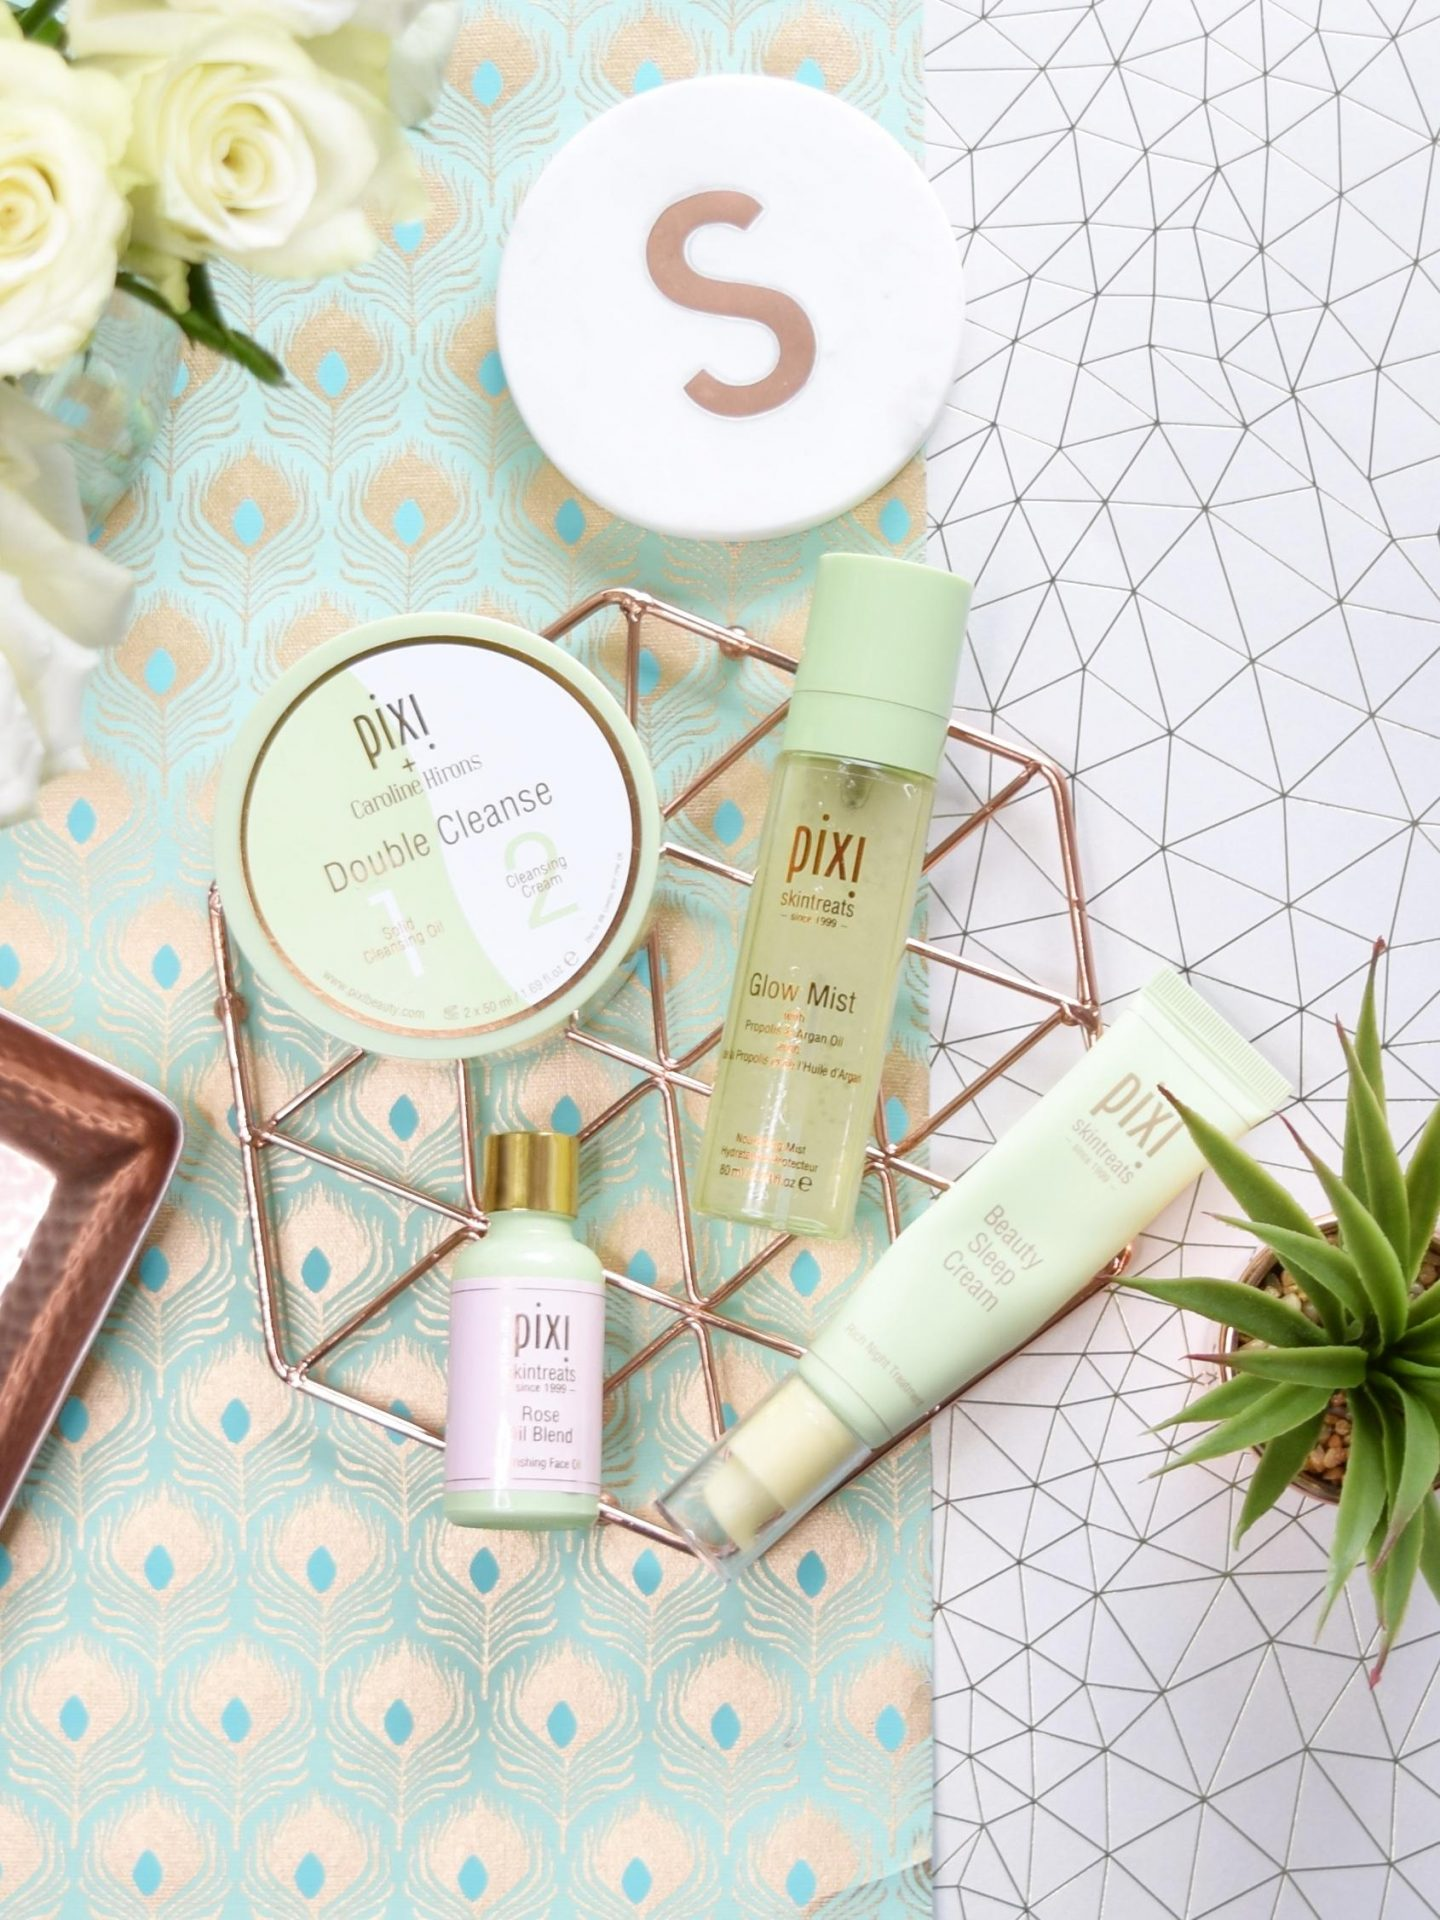 Pixi Beauty Skincare Routine